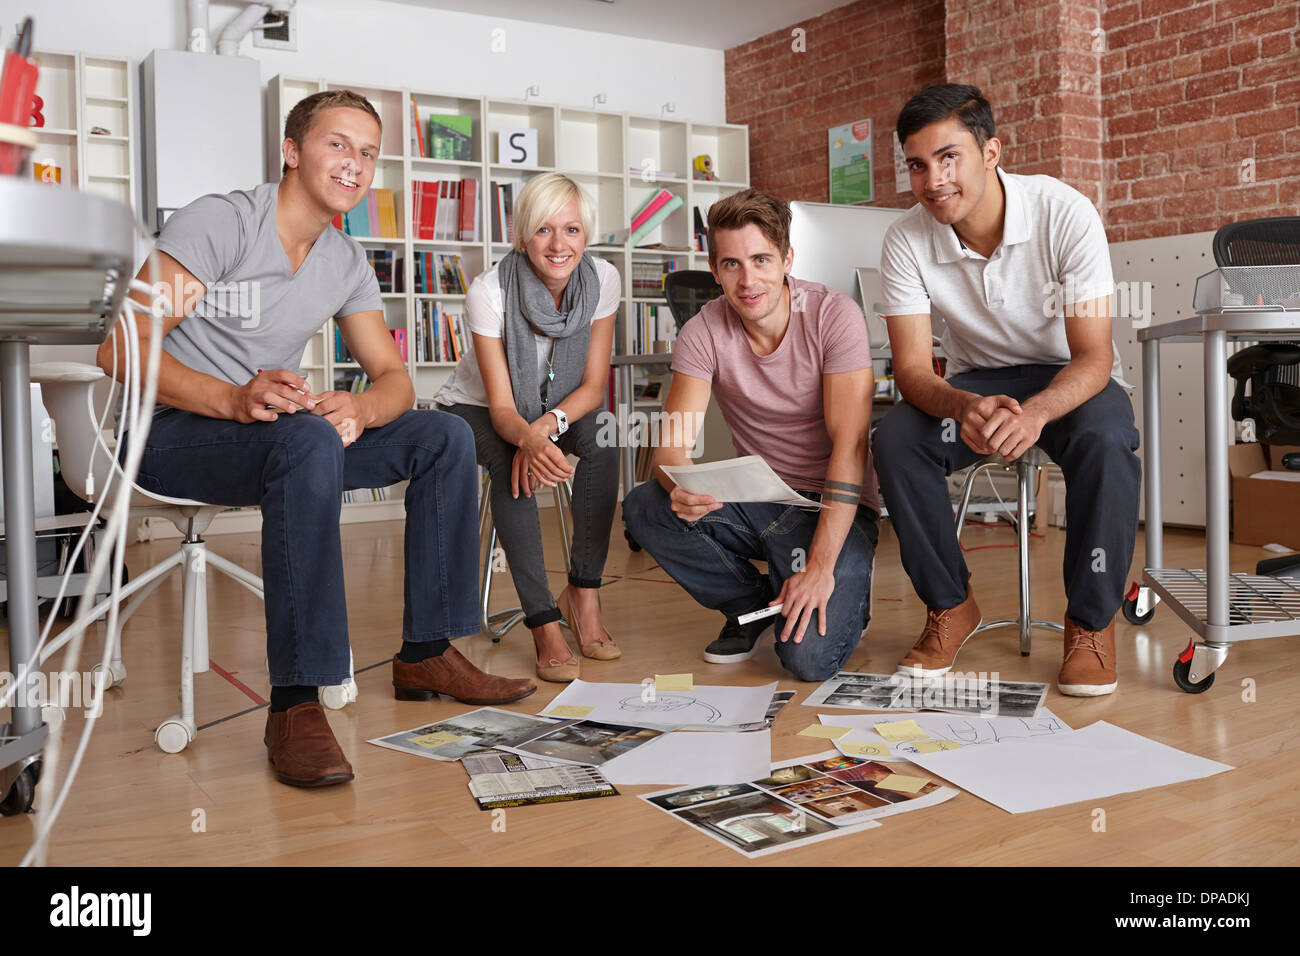 Portrait of colleagues with papers on floor - Stock Image